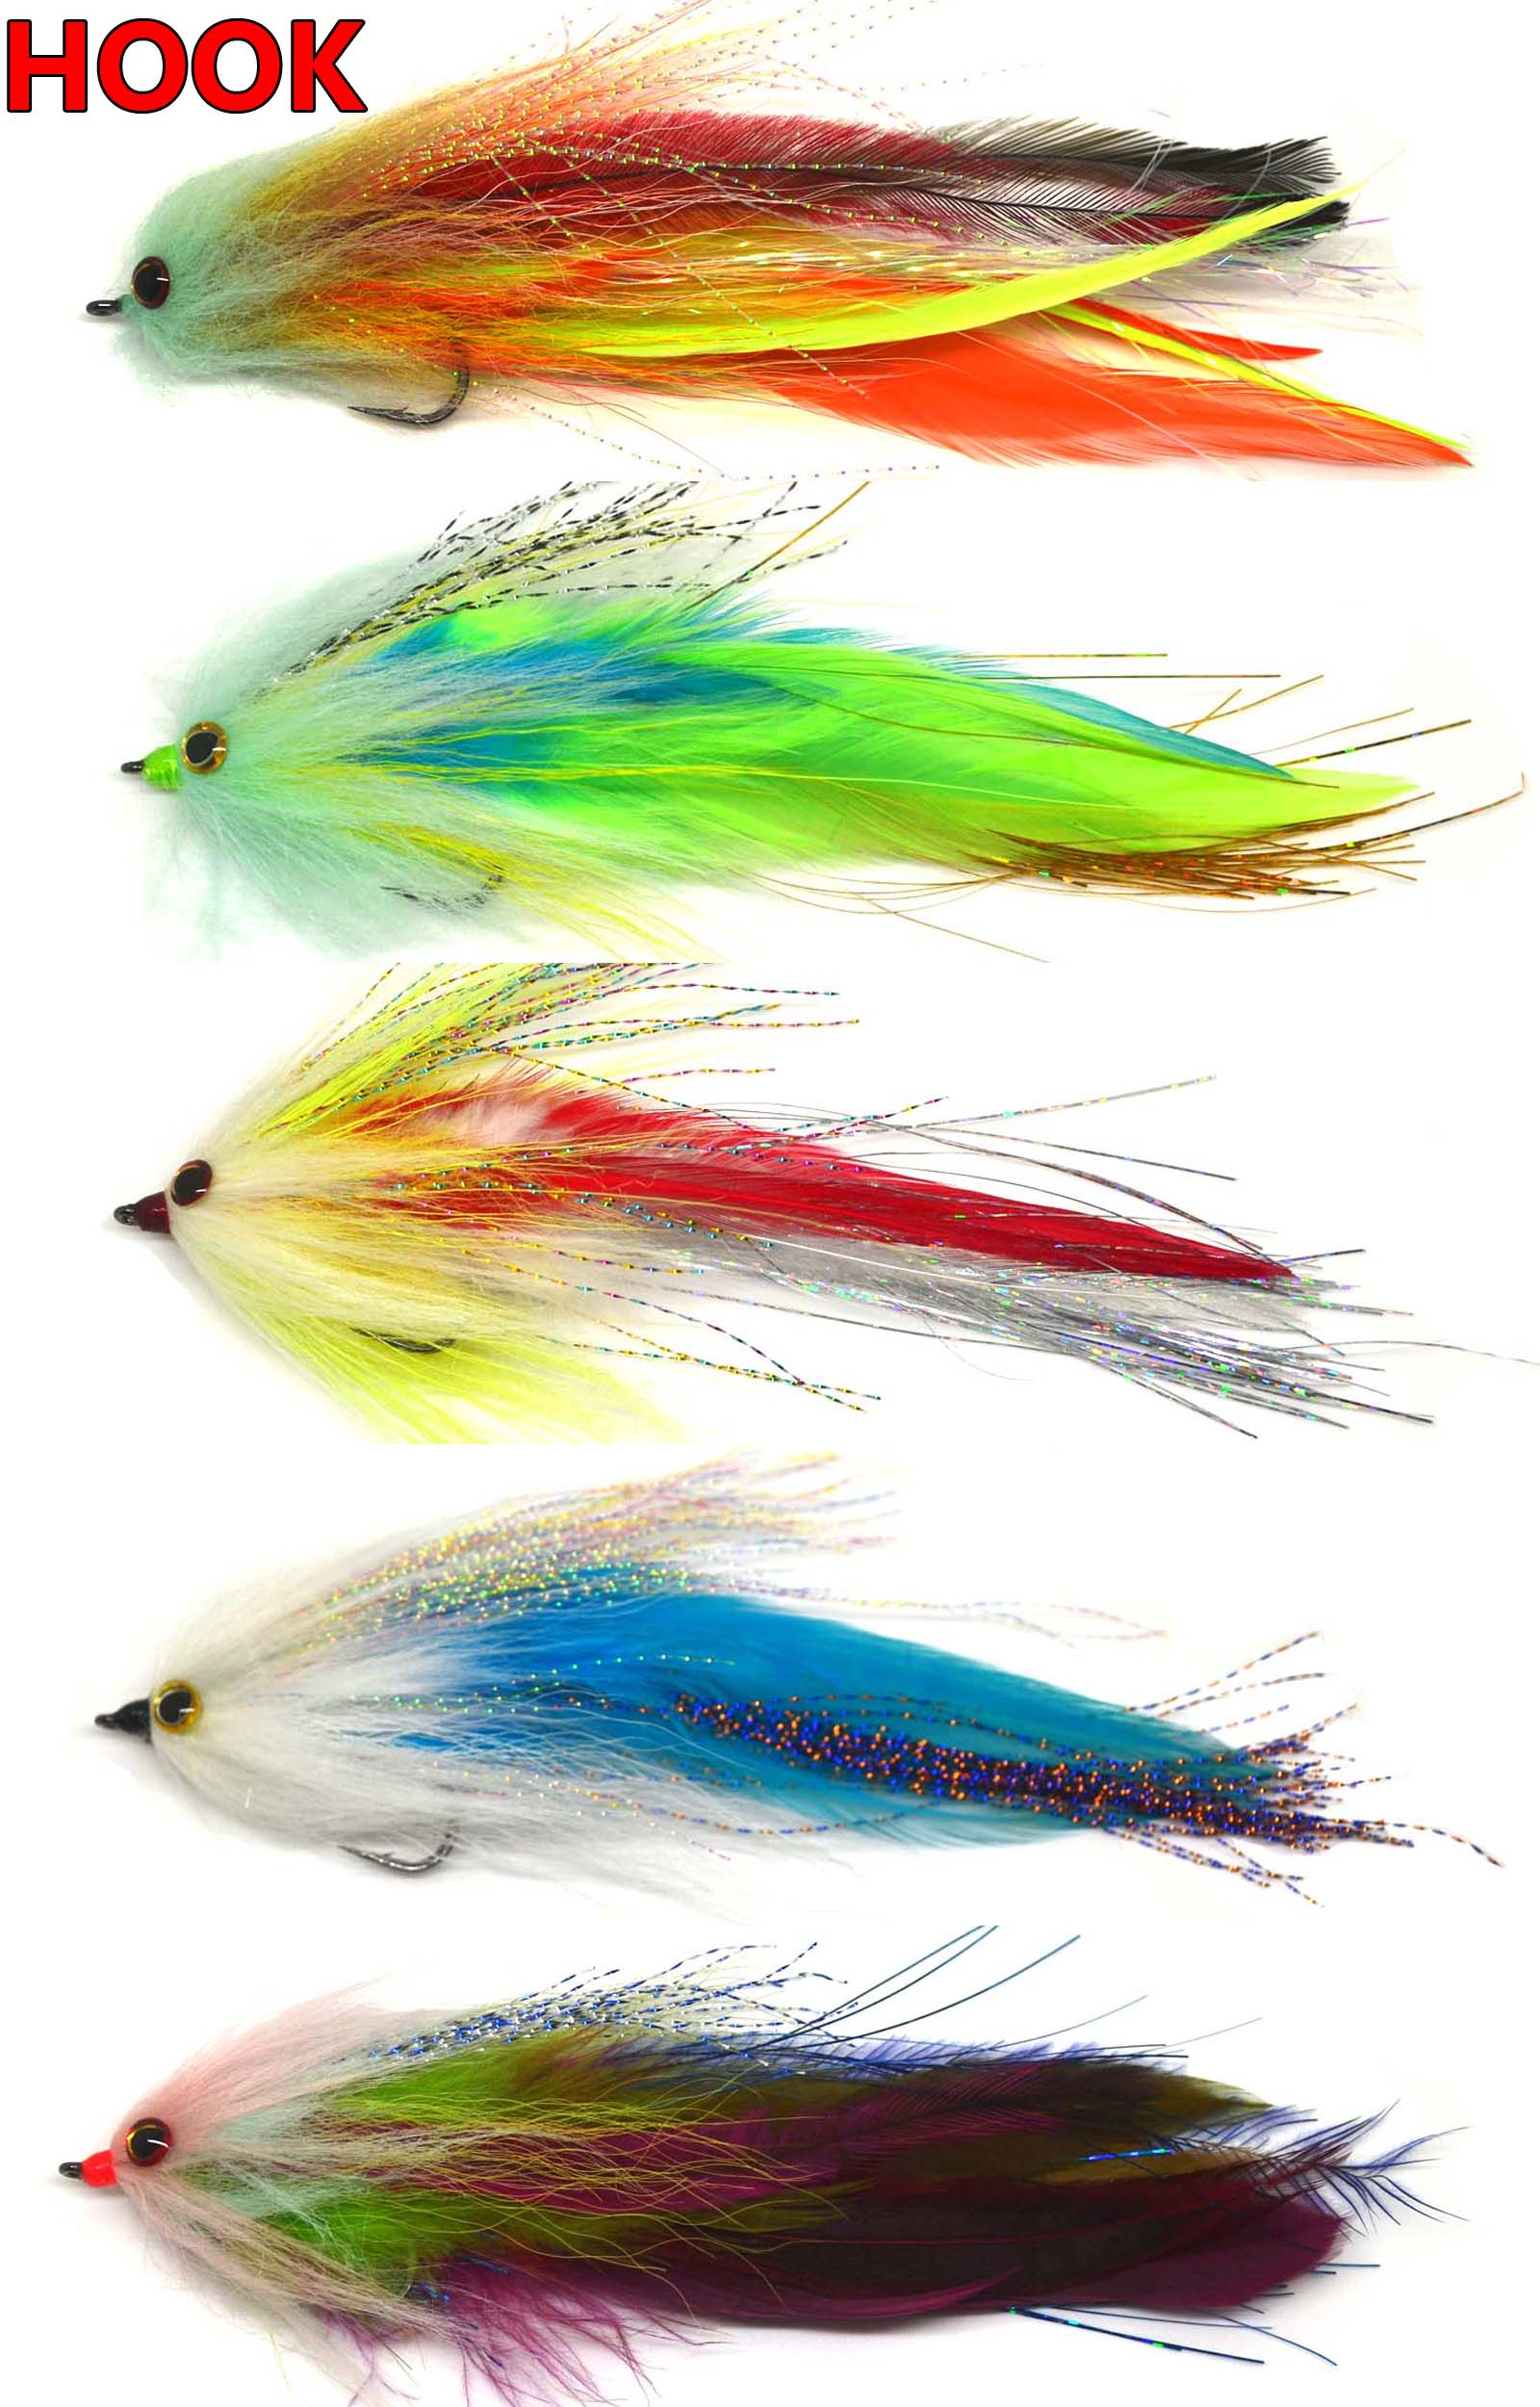 6 Quot Hook Tube Trout Salmon Steelhead Pike Fly Fishing Streamer Flies Saltwater Ebay